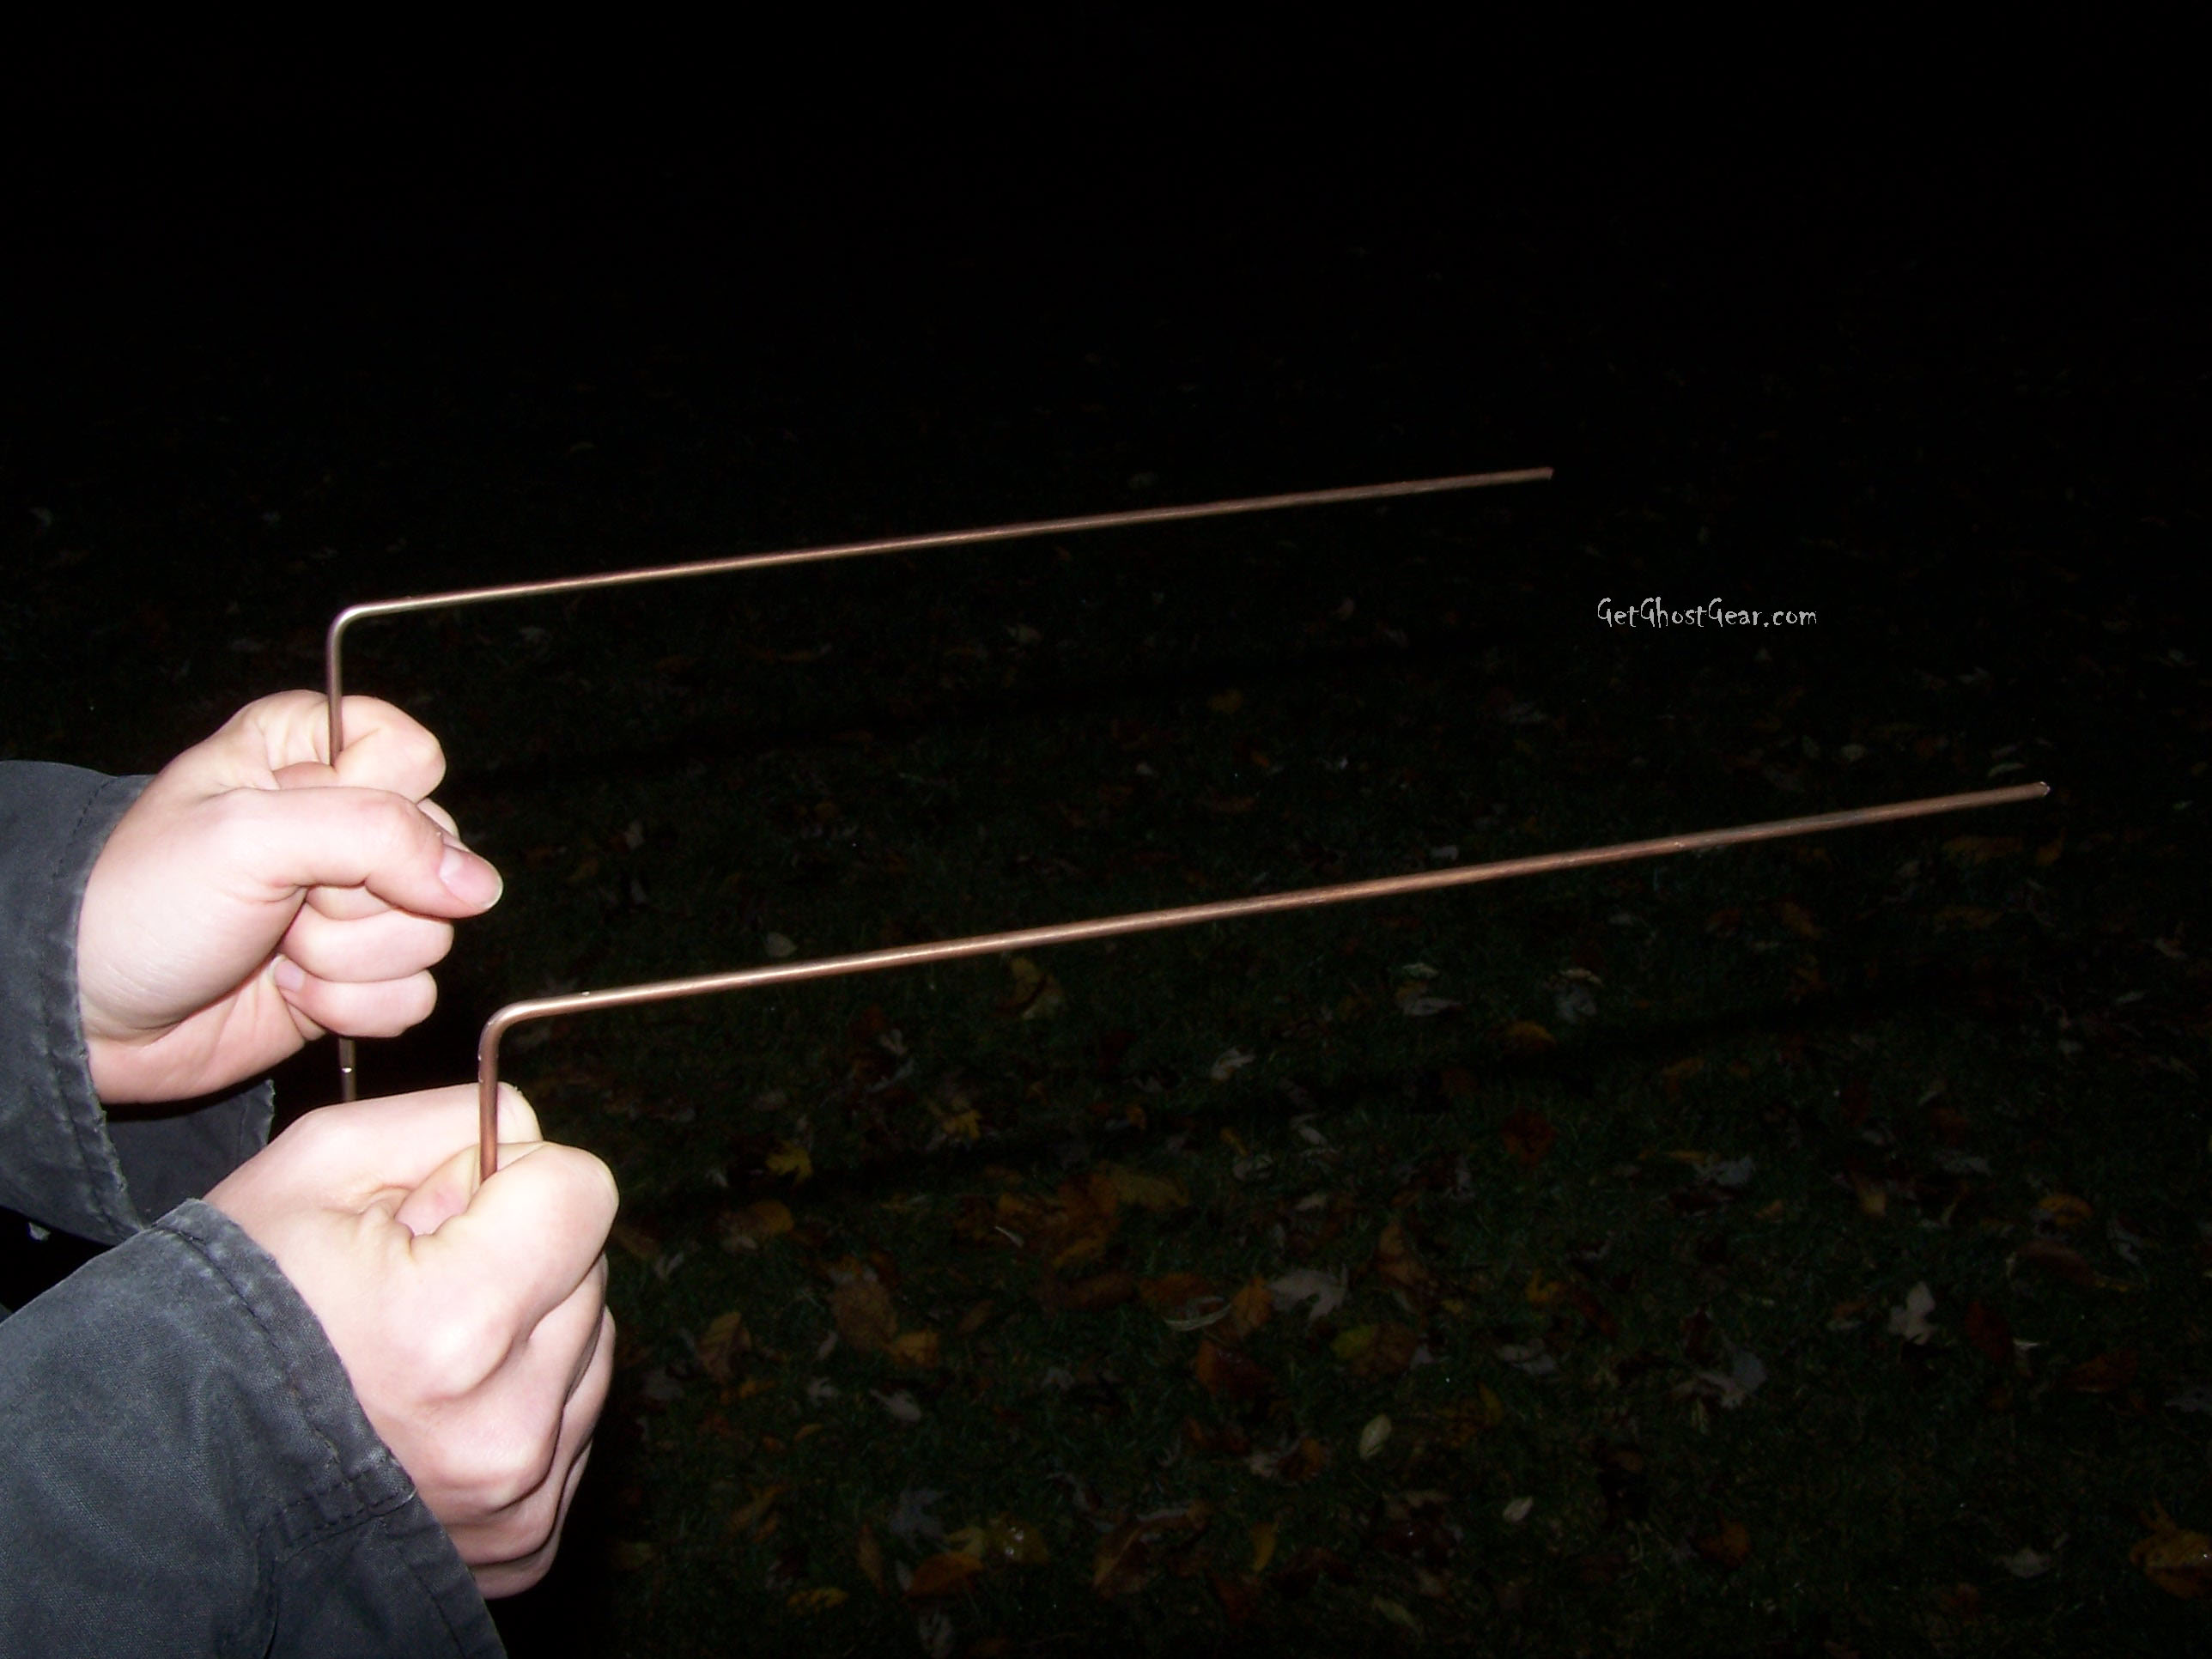 Dowsing rods used by metaphysical ghost hunters